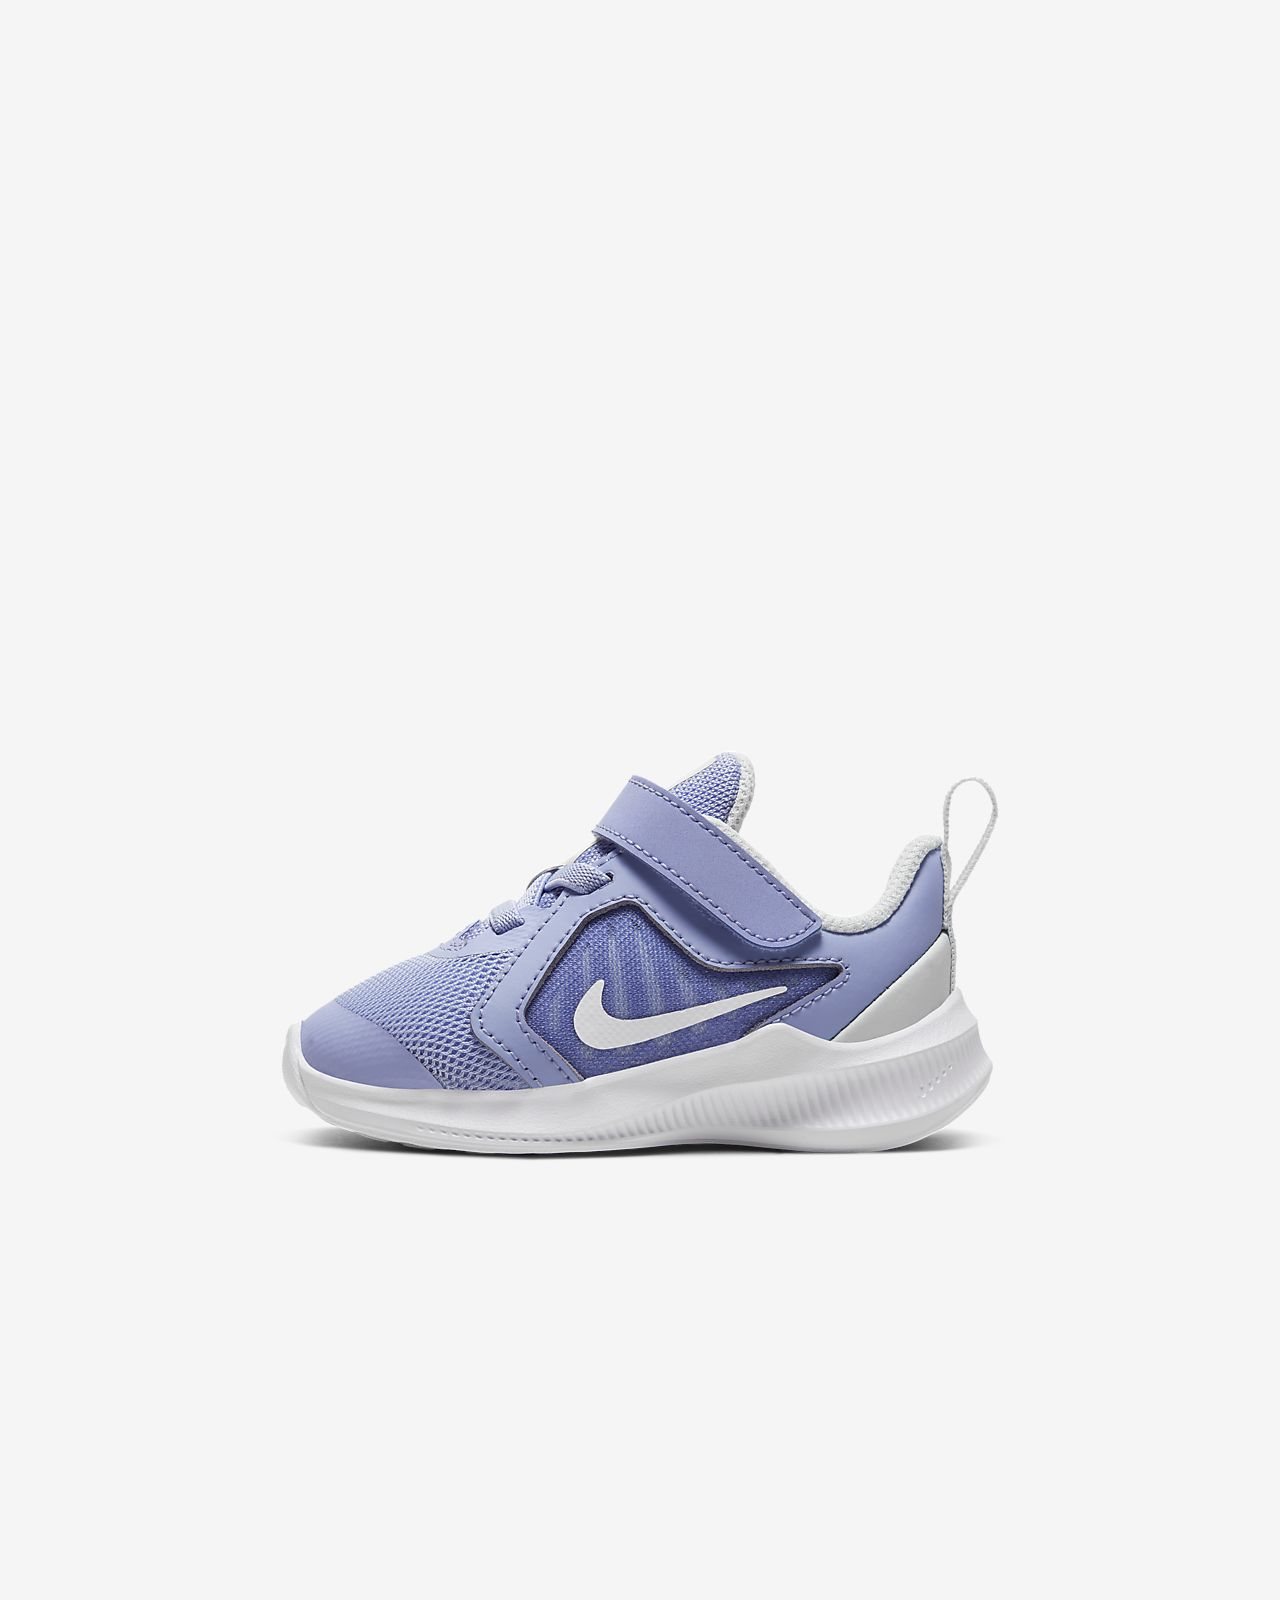 Nike Downshifter 10 Baby/Toddler Shoe